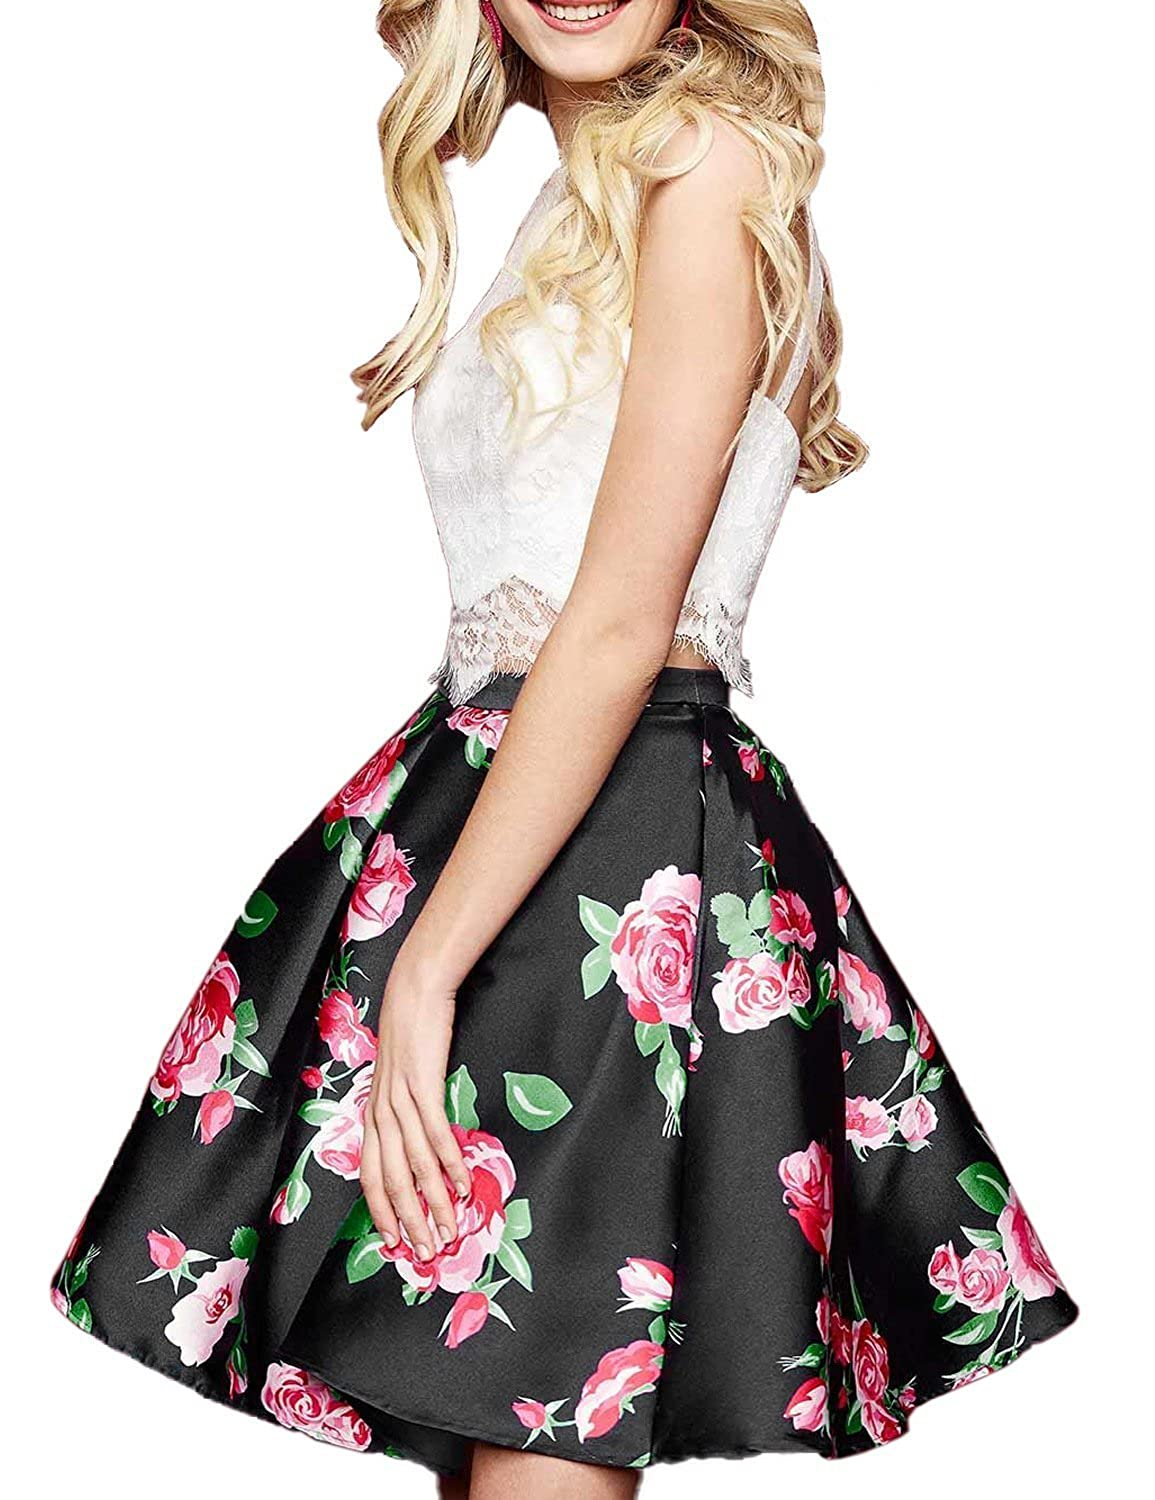 Black Yiweir Women's Short Two Piece Homecoming Dresses 2018 Floral Lace Formal Prom Gowns YF013